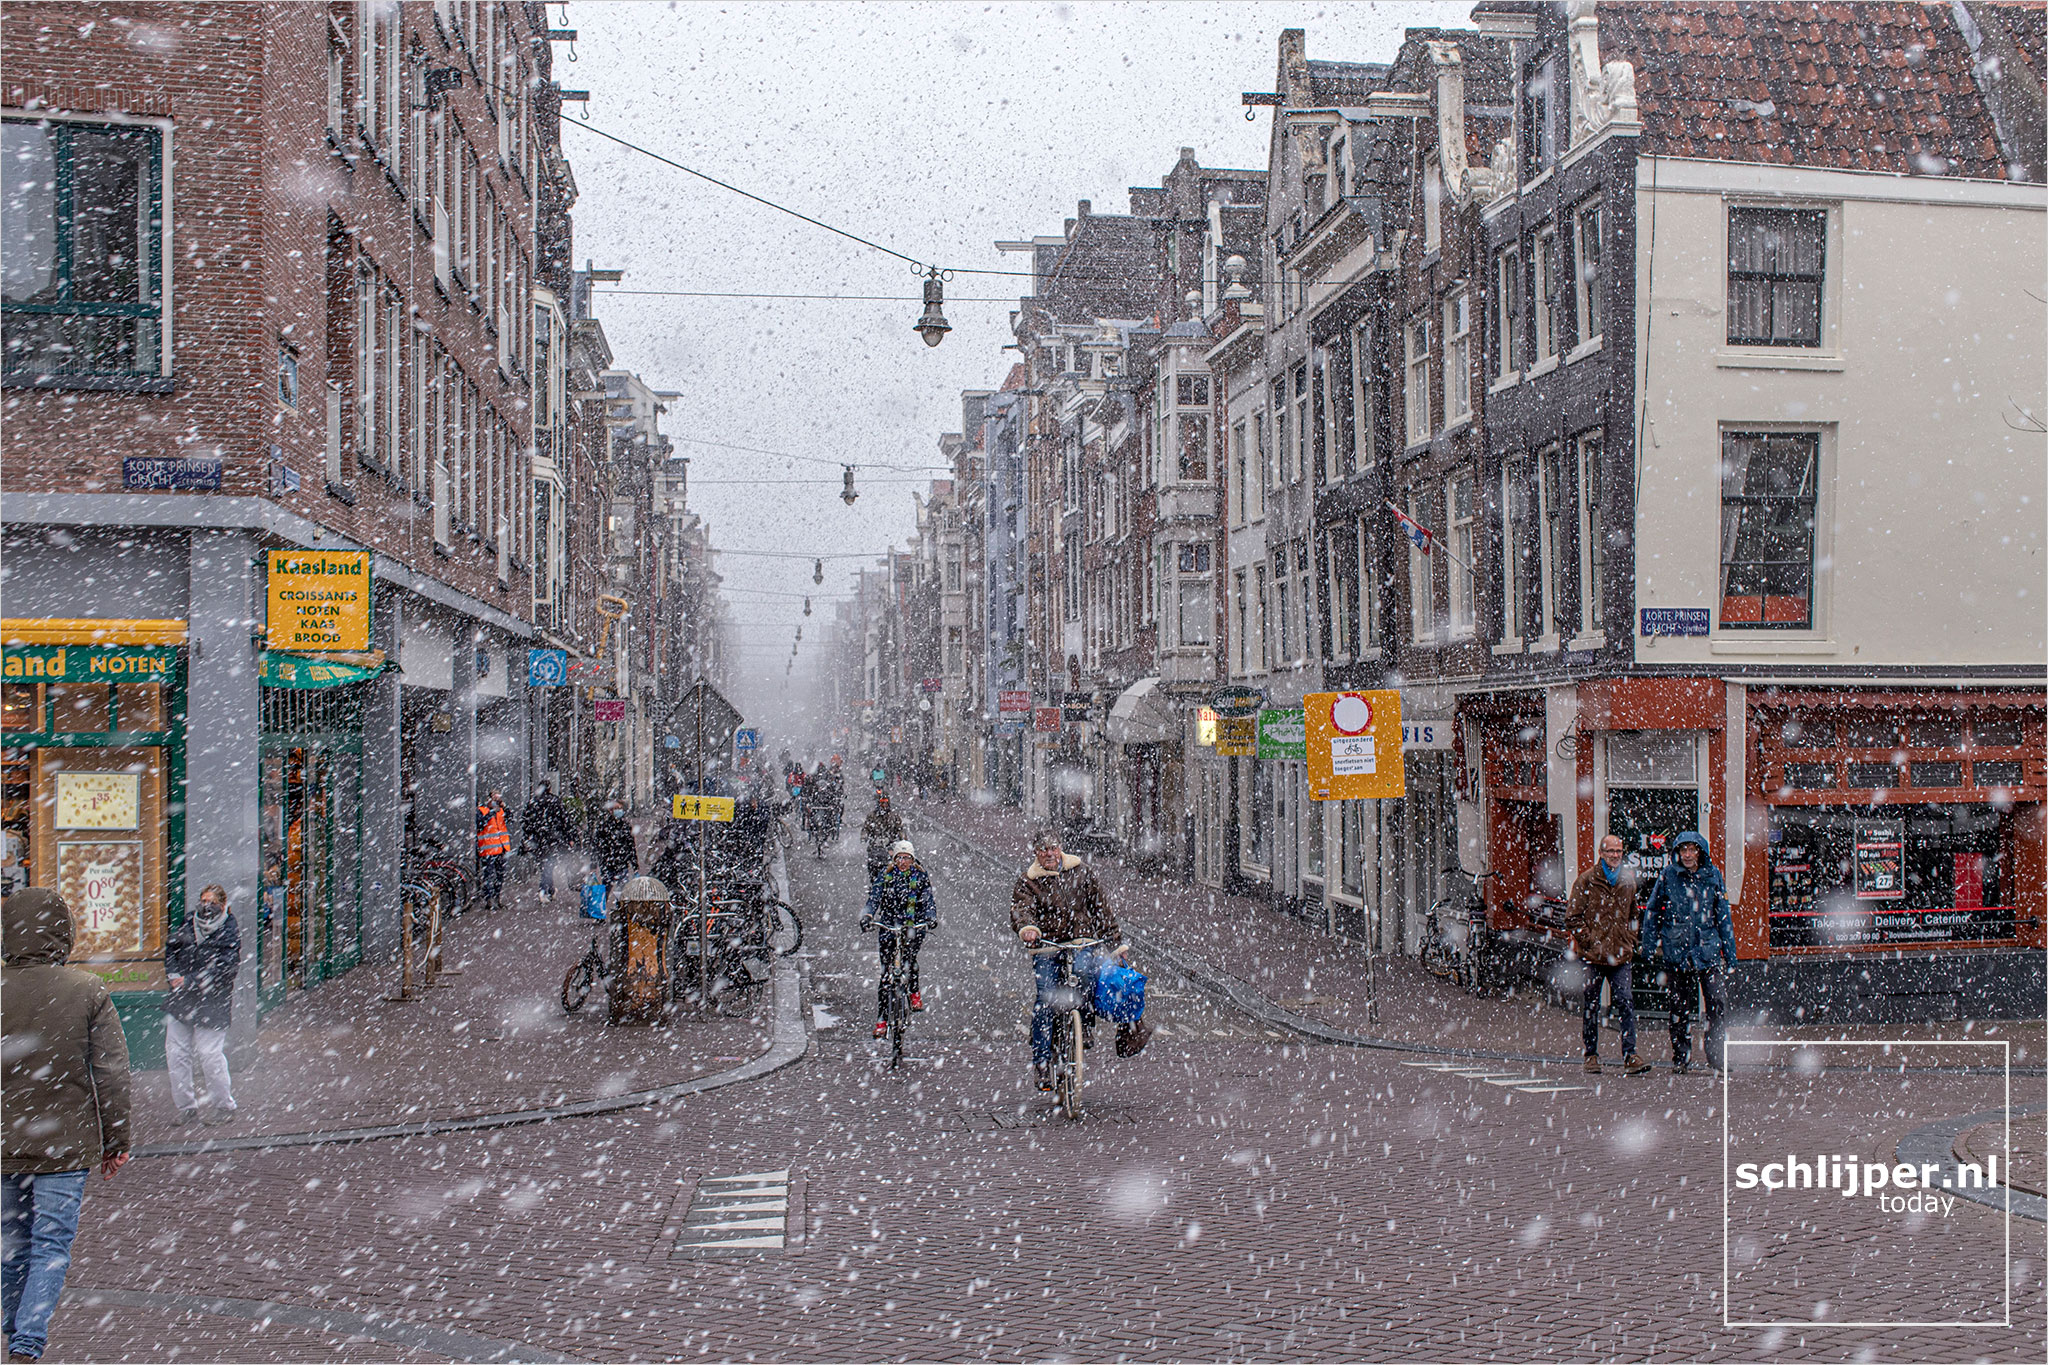 The Netherlands, Amsterdam, 5 april 2021